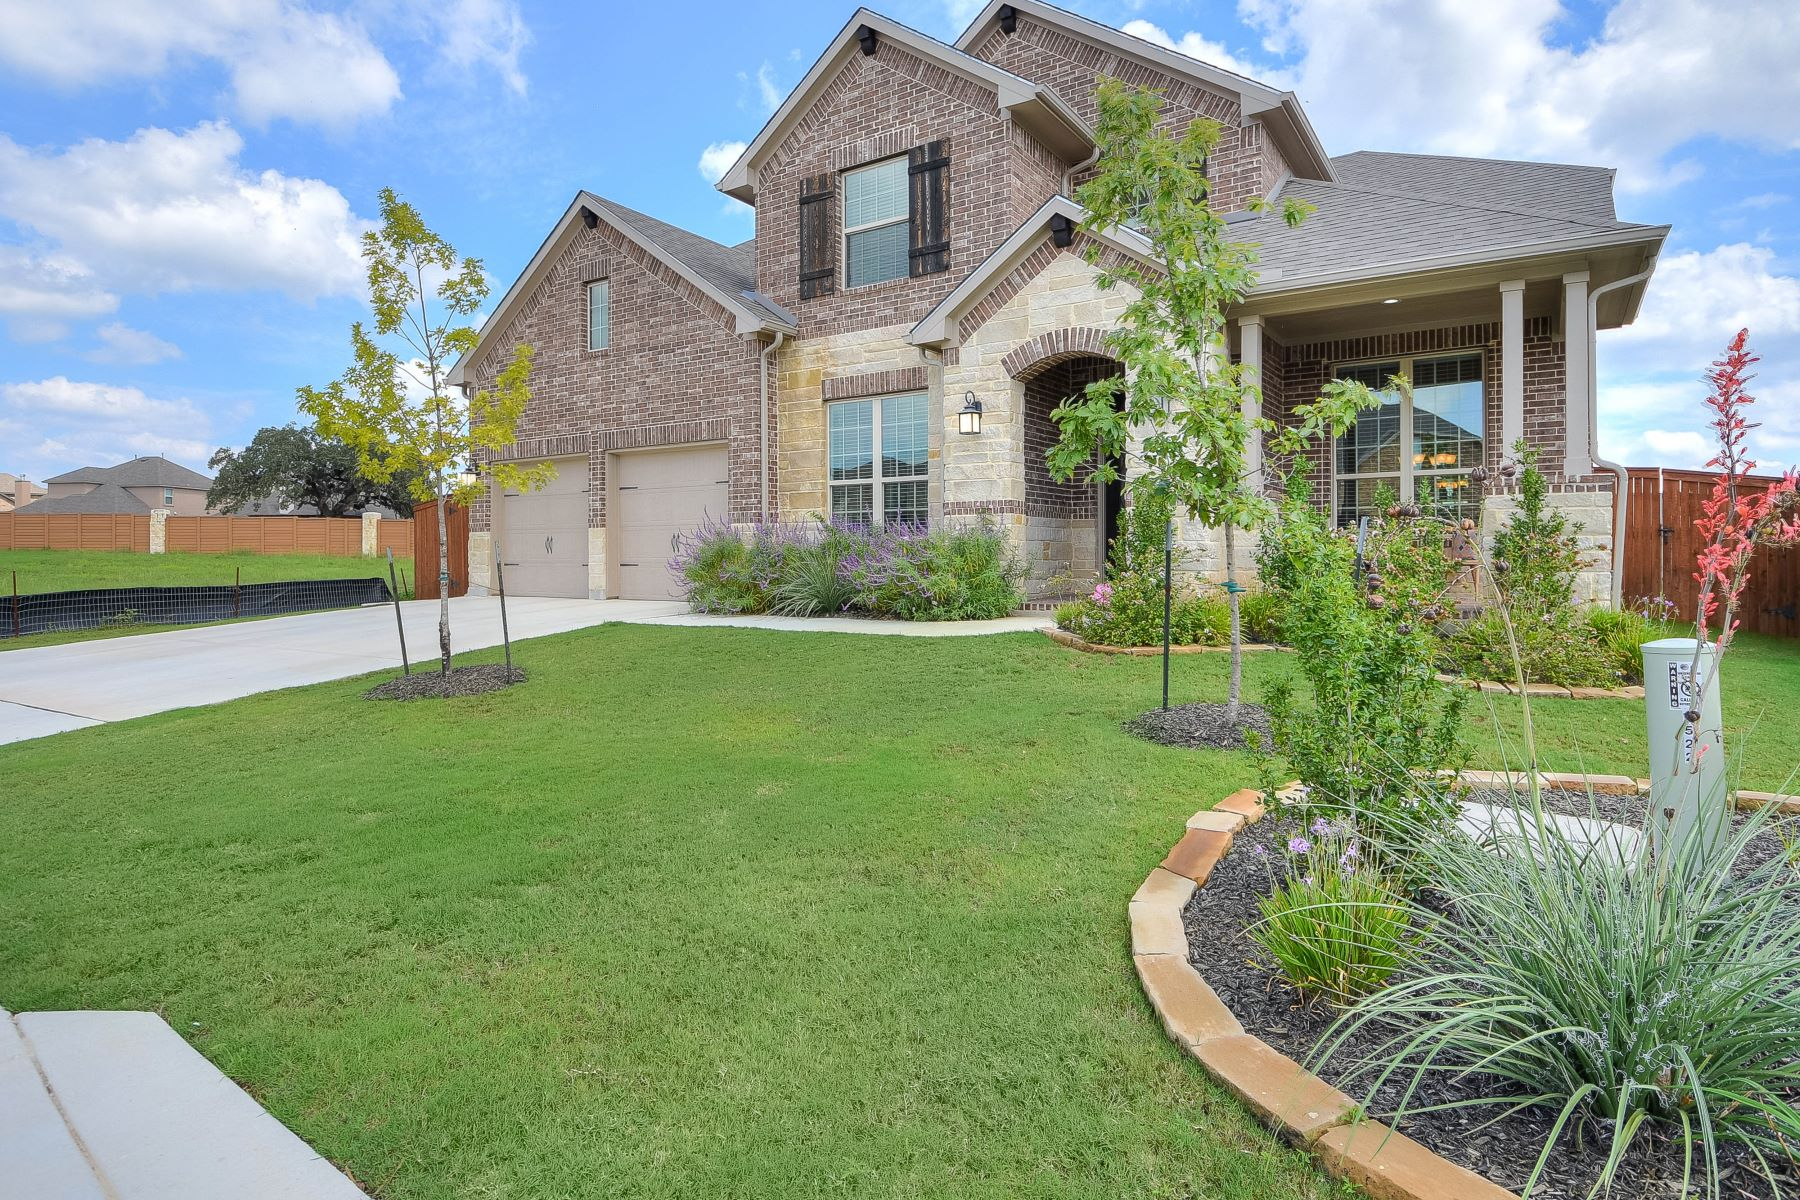 Single Family Home for Sale at Beautiful Highland Home in Stillwater Ranch 7522 Foss Aly San Antonio, Texas 78254 United States